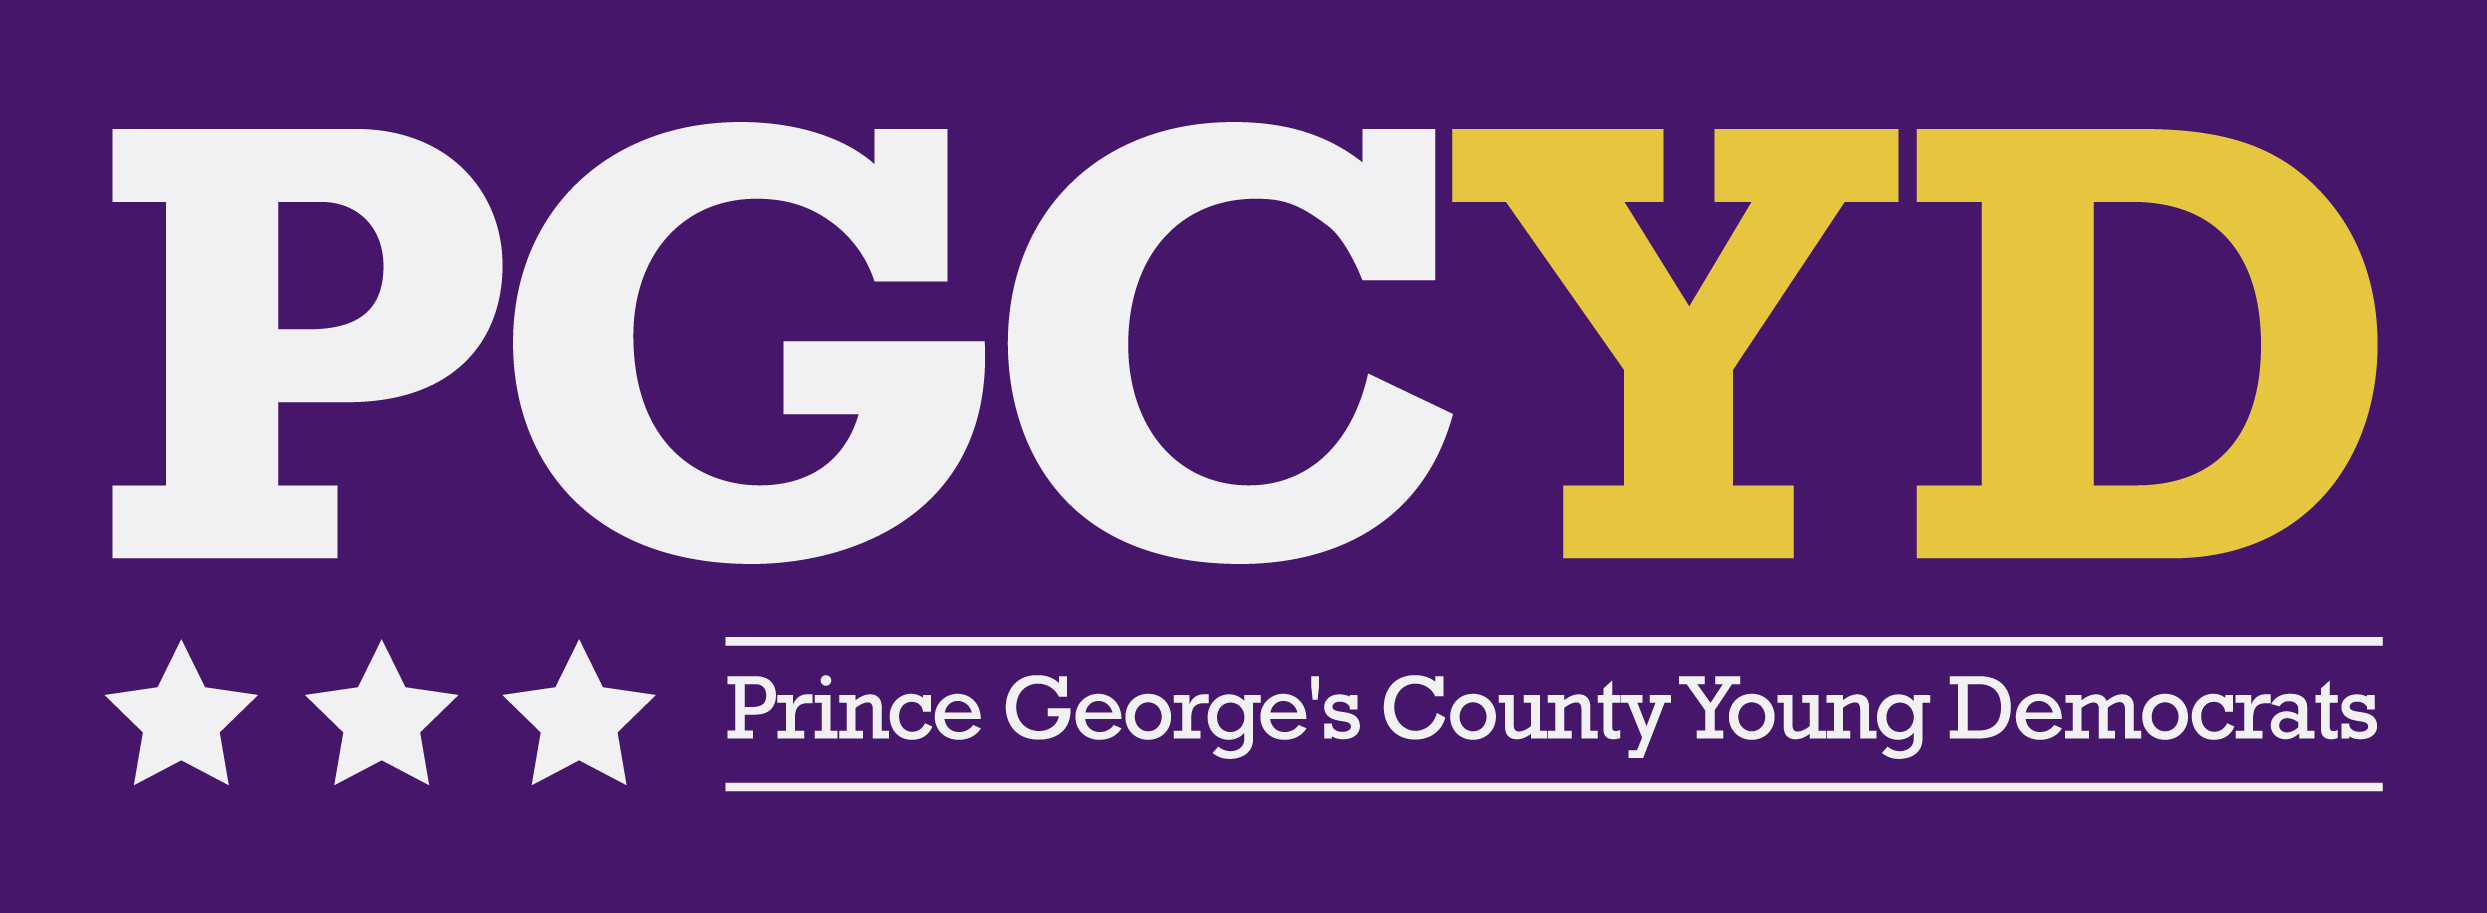 Prince George's County Young Democrats